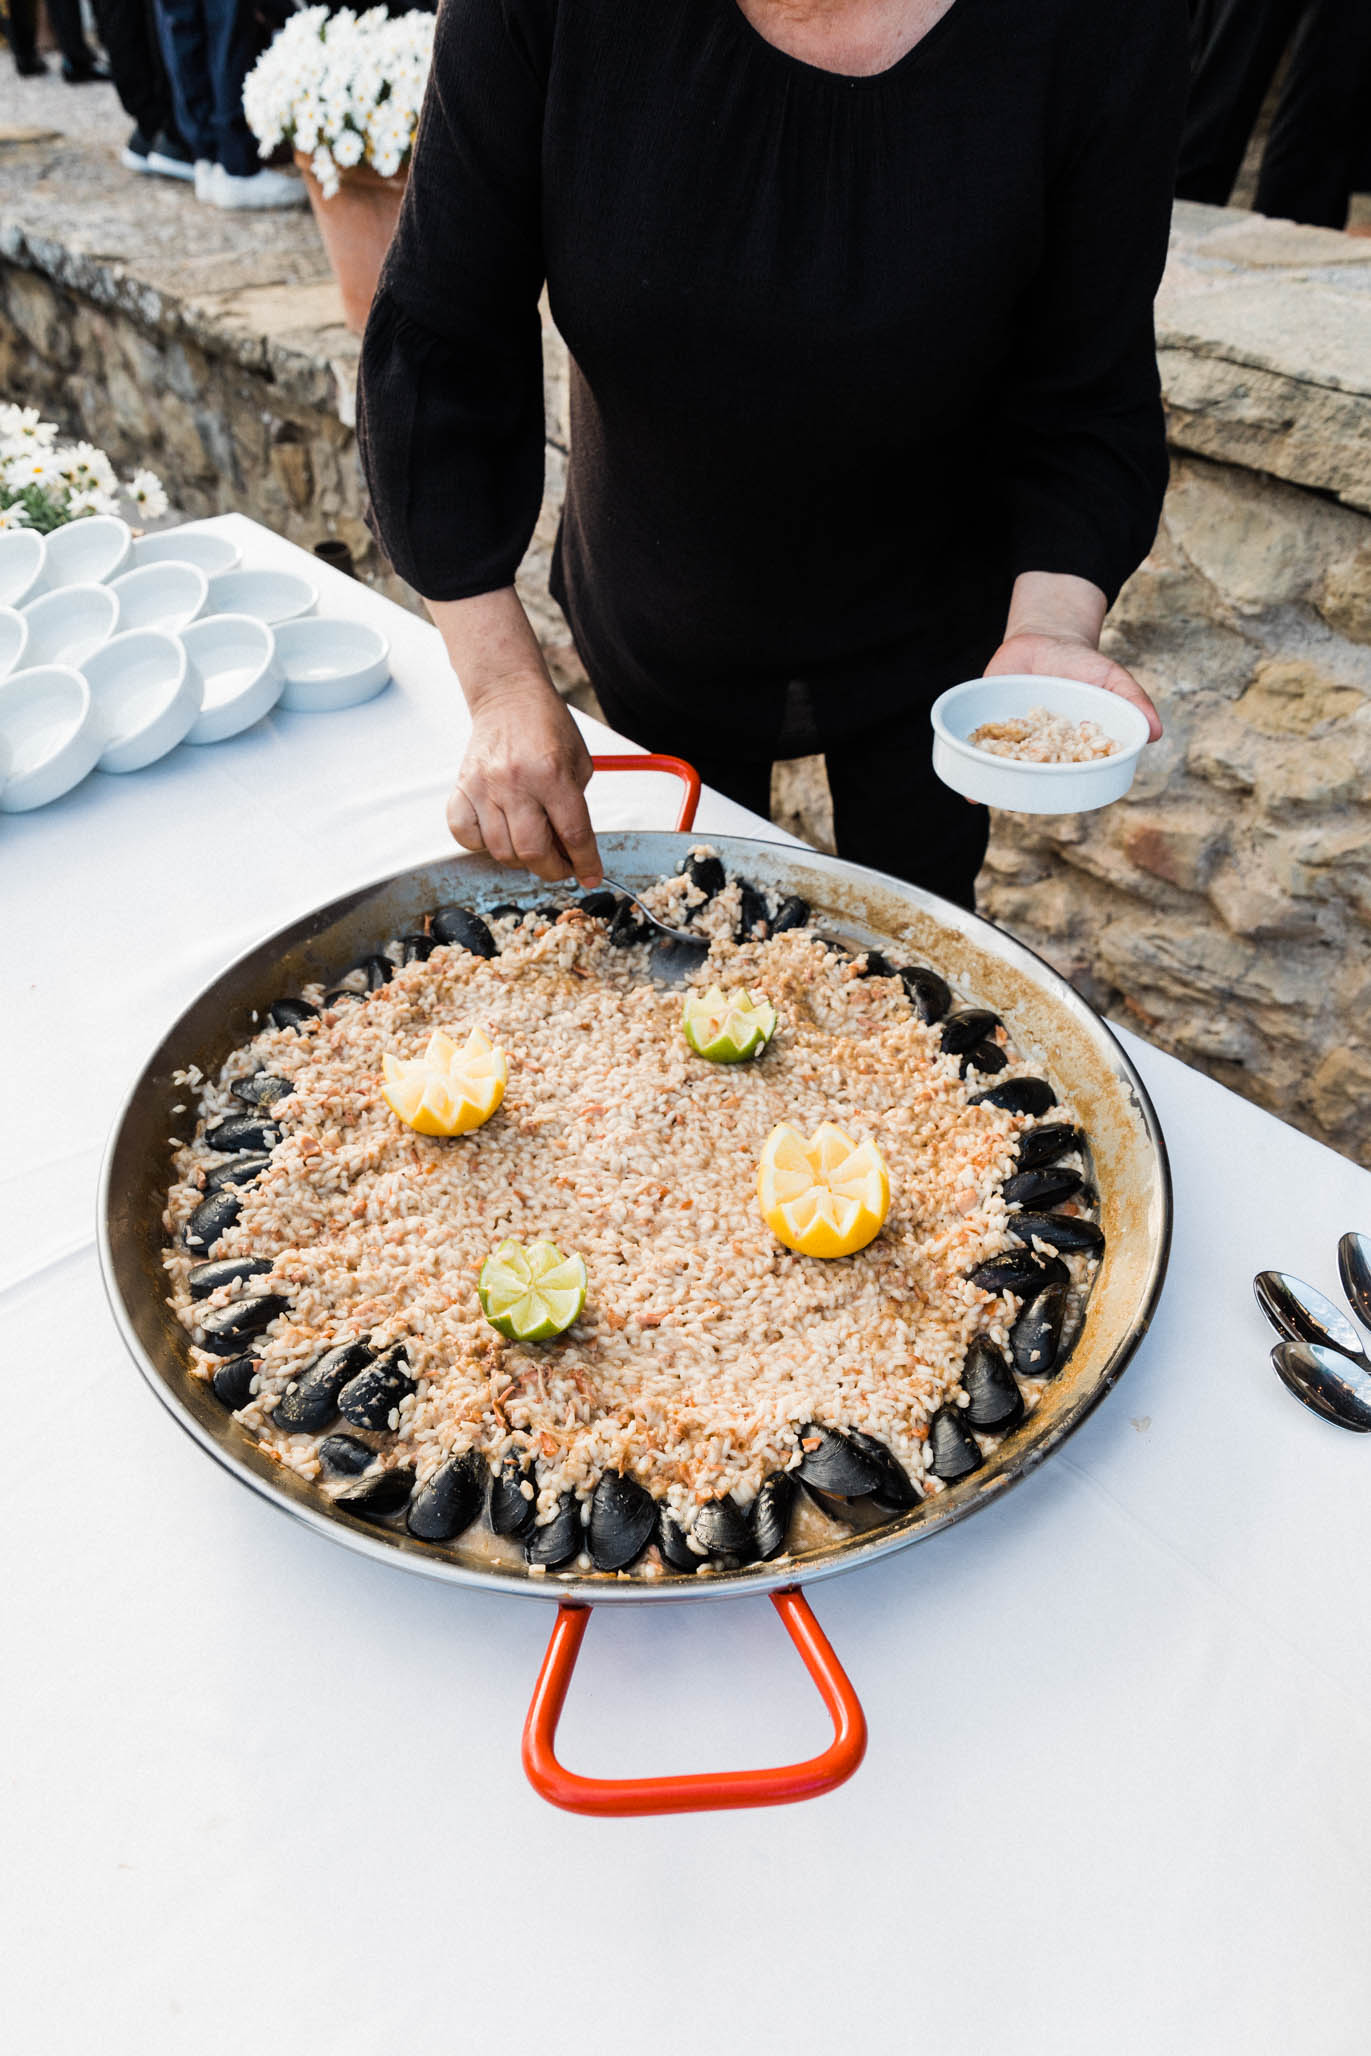 Of course there was Paella. It isn't a Catalonian wedding with out a good ol' dish of seafood Paella!